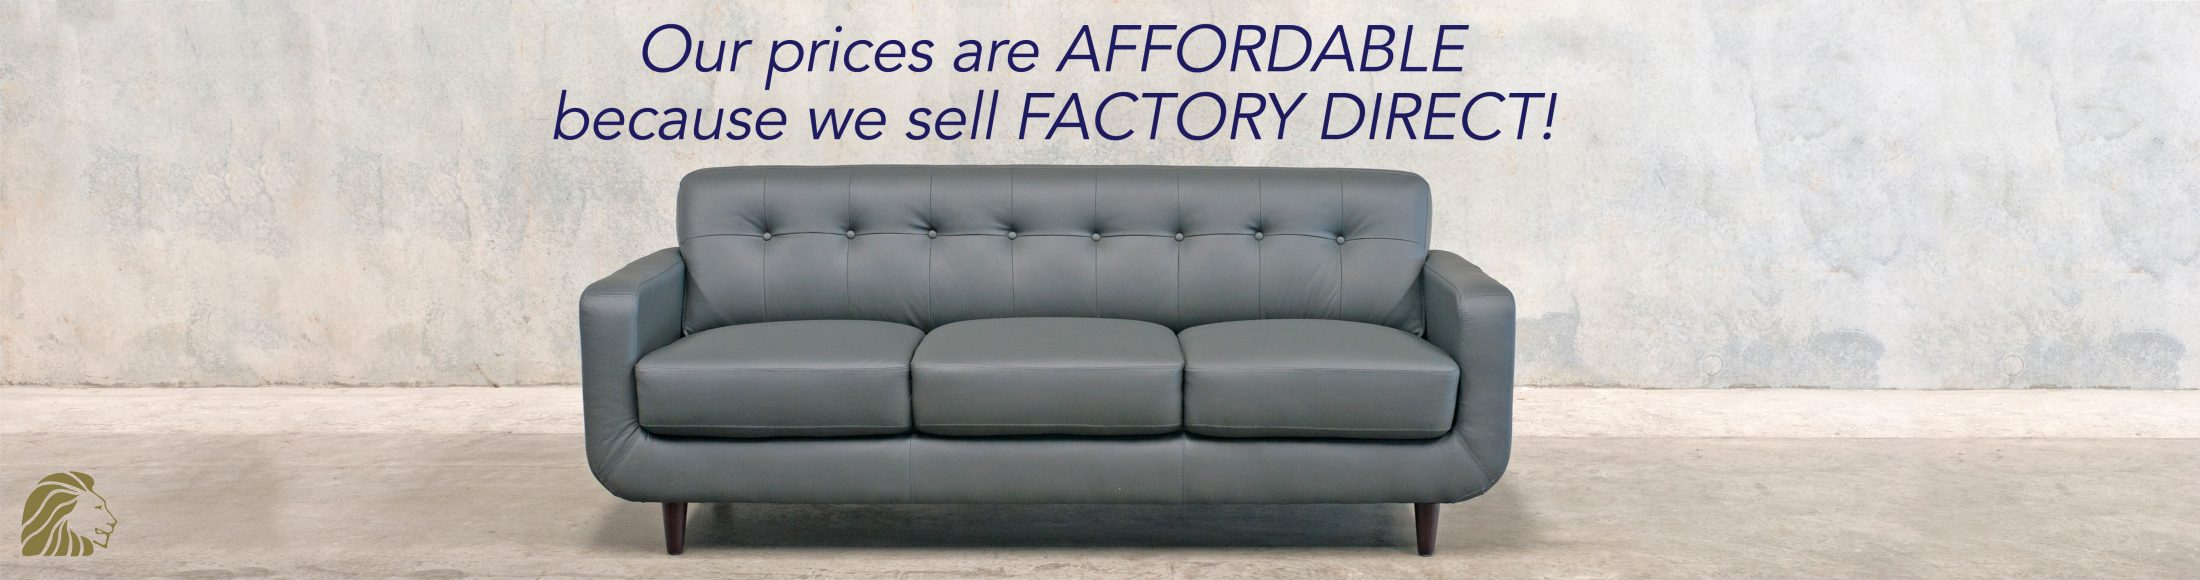 Phenomenal Leather Sofas Couches Lounges For Sale Perth Gascoigne Pdpeps Interior Chair Design Pdpepsorg